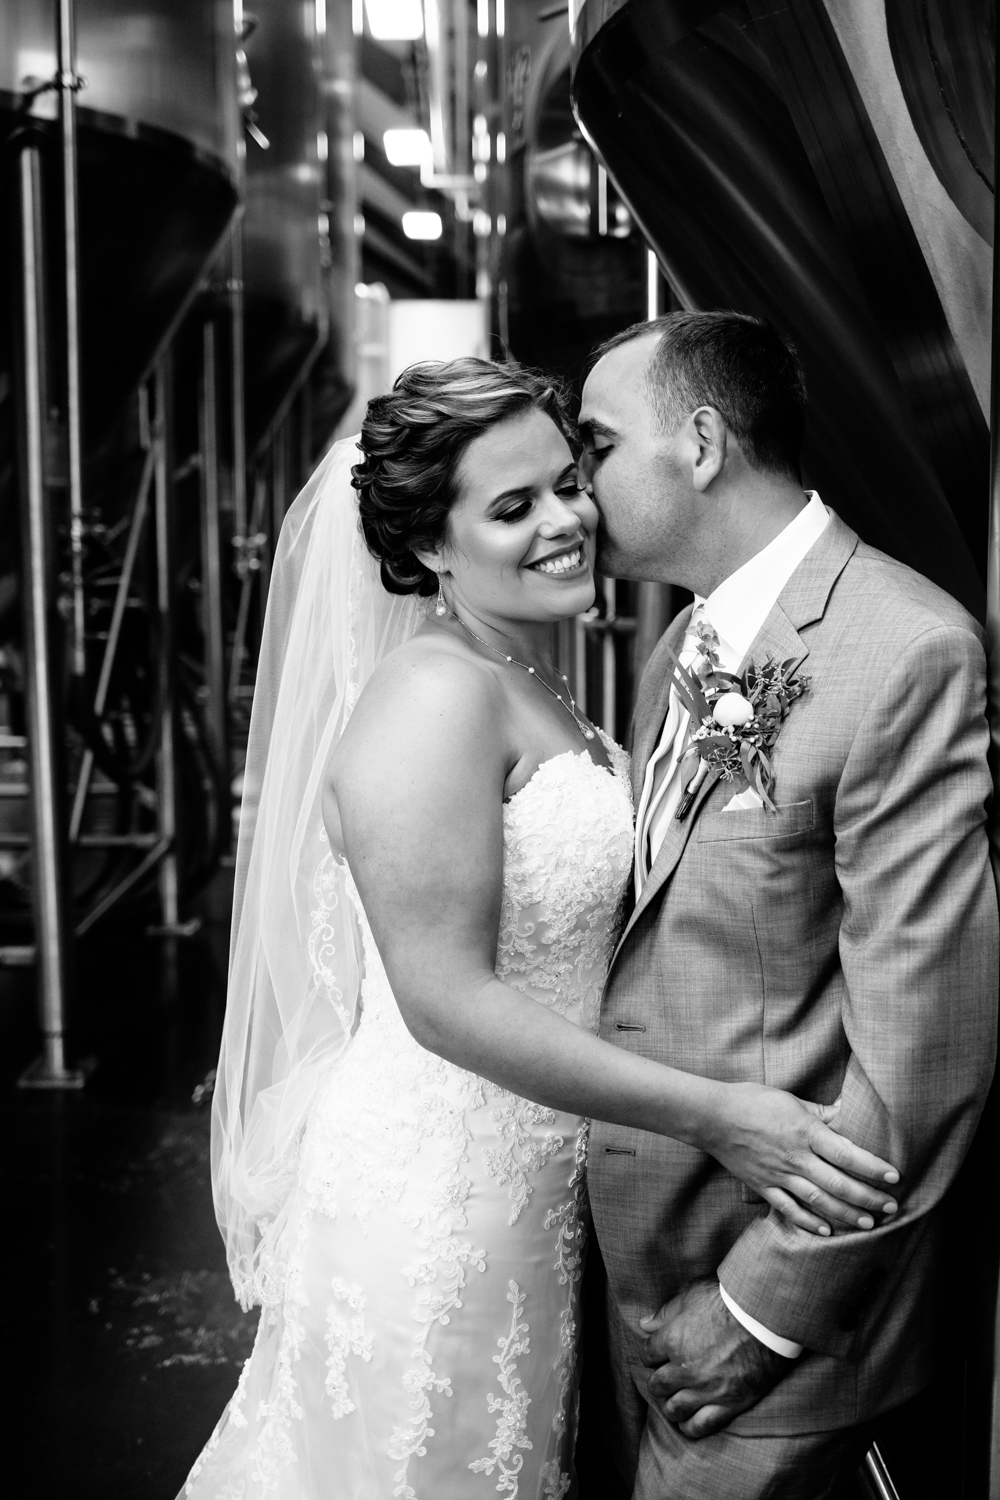 Black and white image of bride leaning into groom while he gives her a kiss on the cheek.